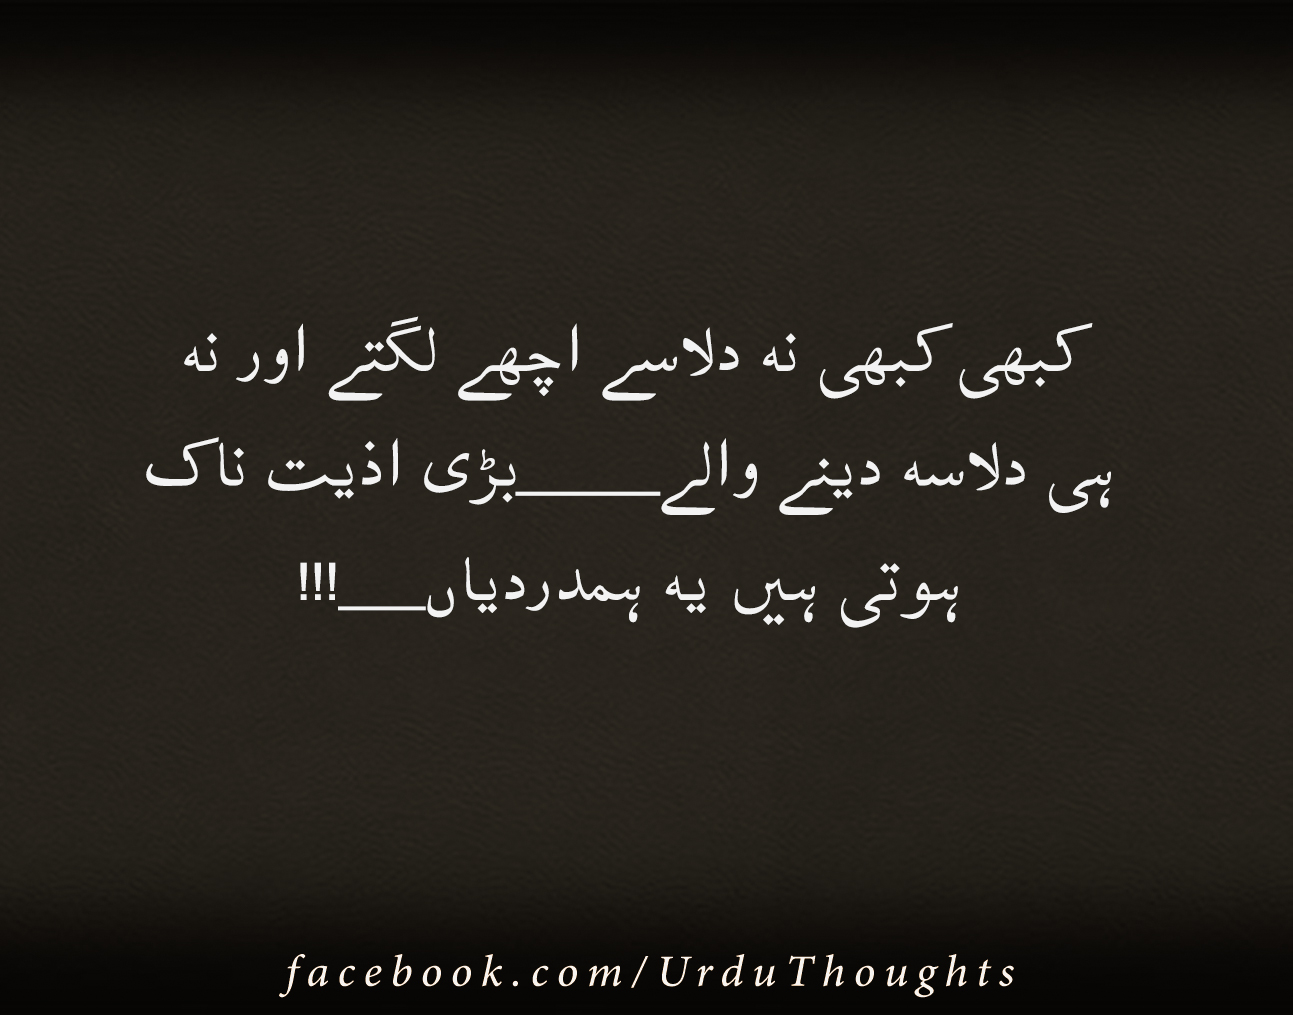 Urdu Quotes About Life - Urdu Achi Batain - Urdu Thoughts